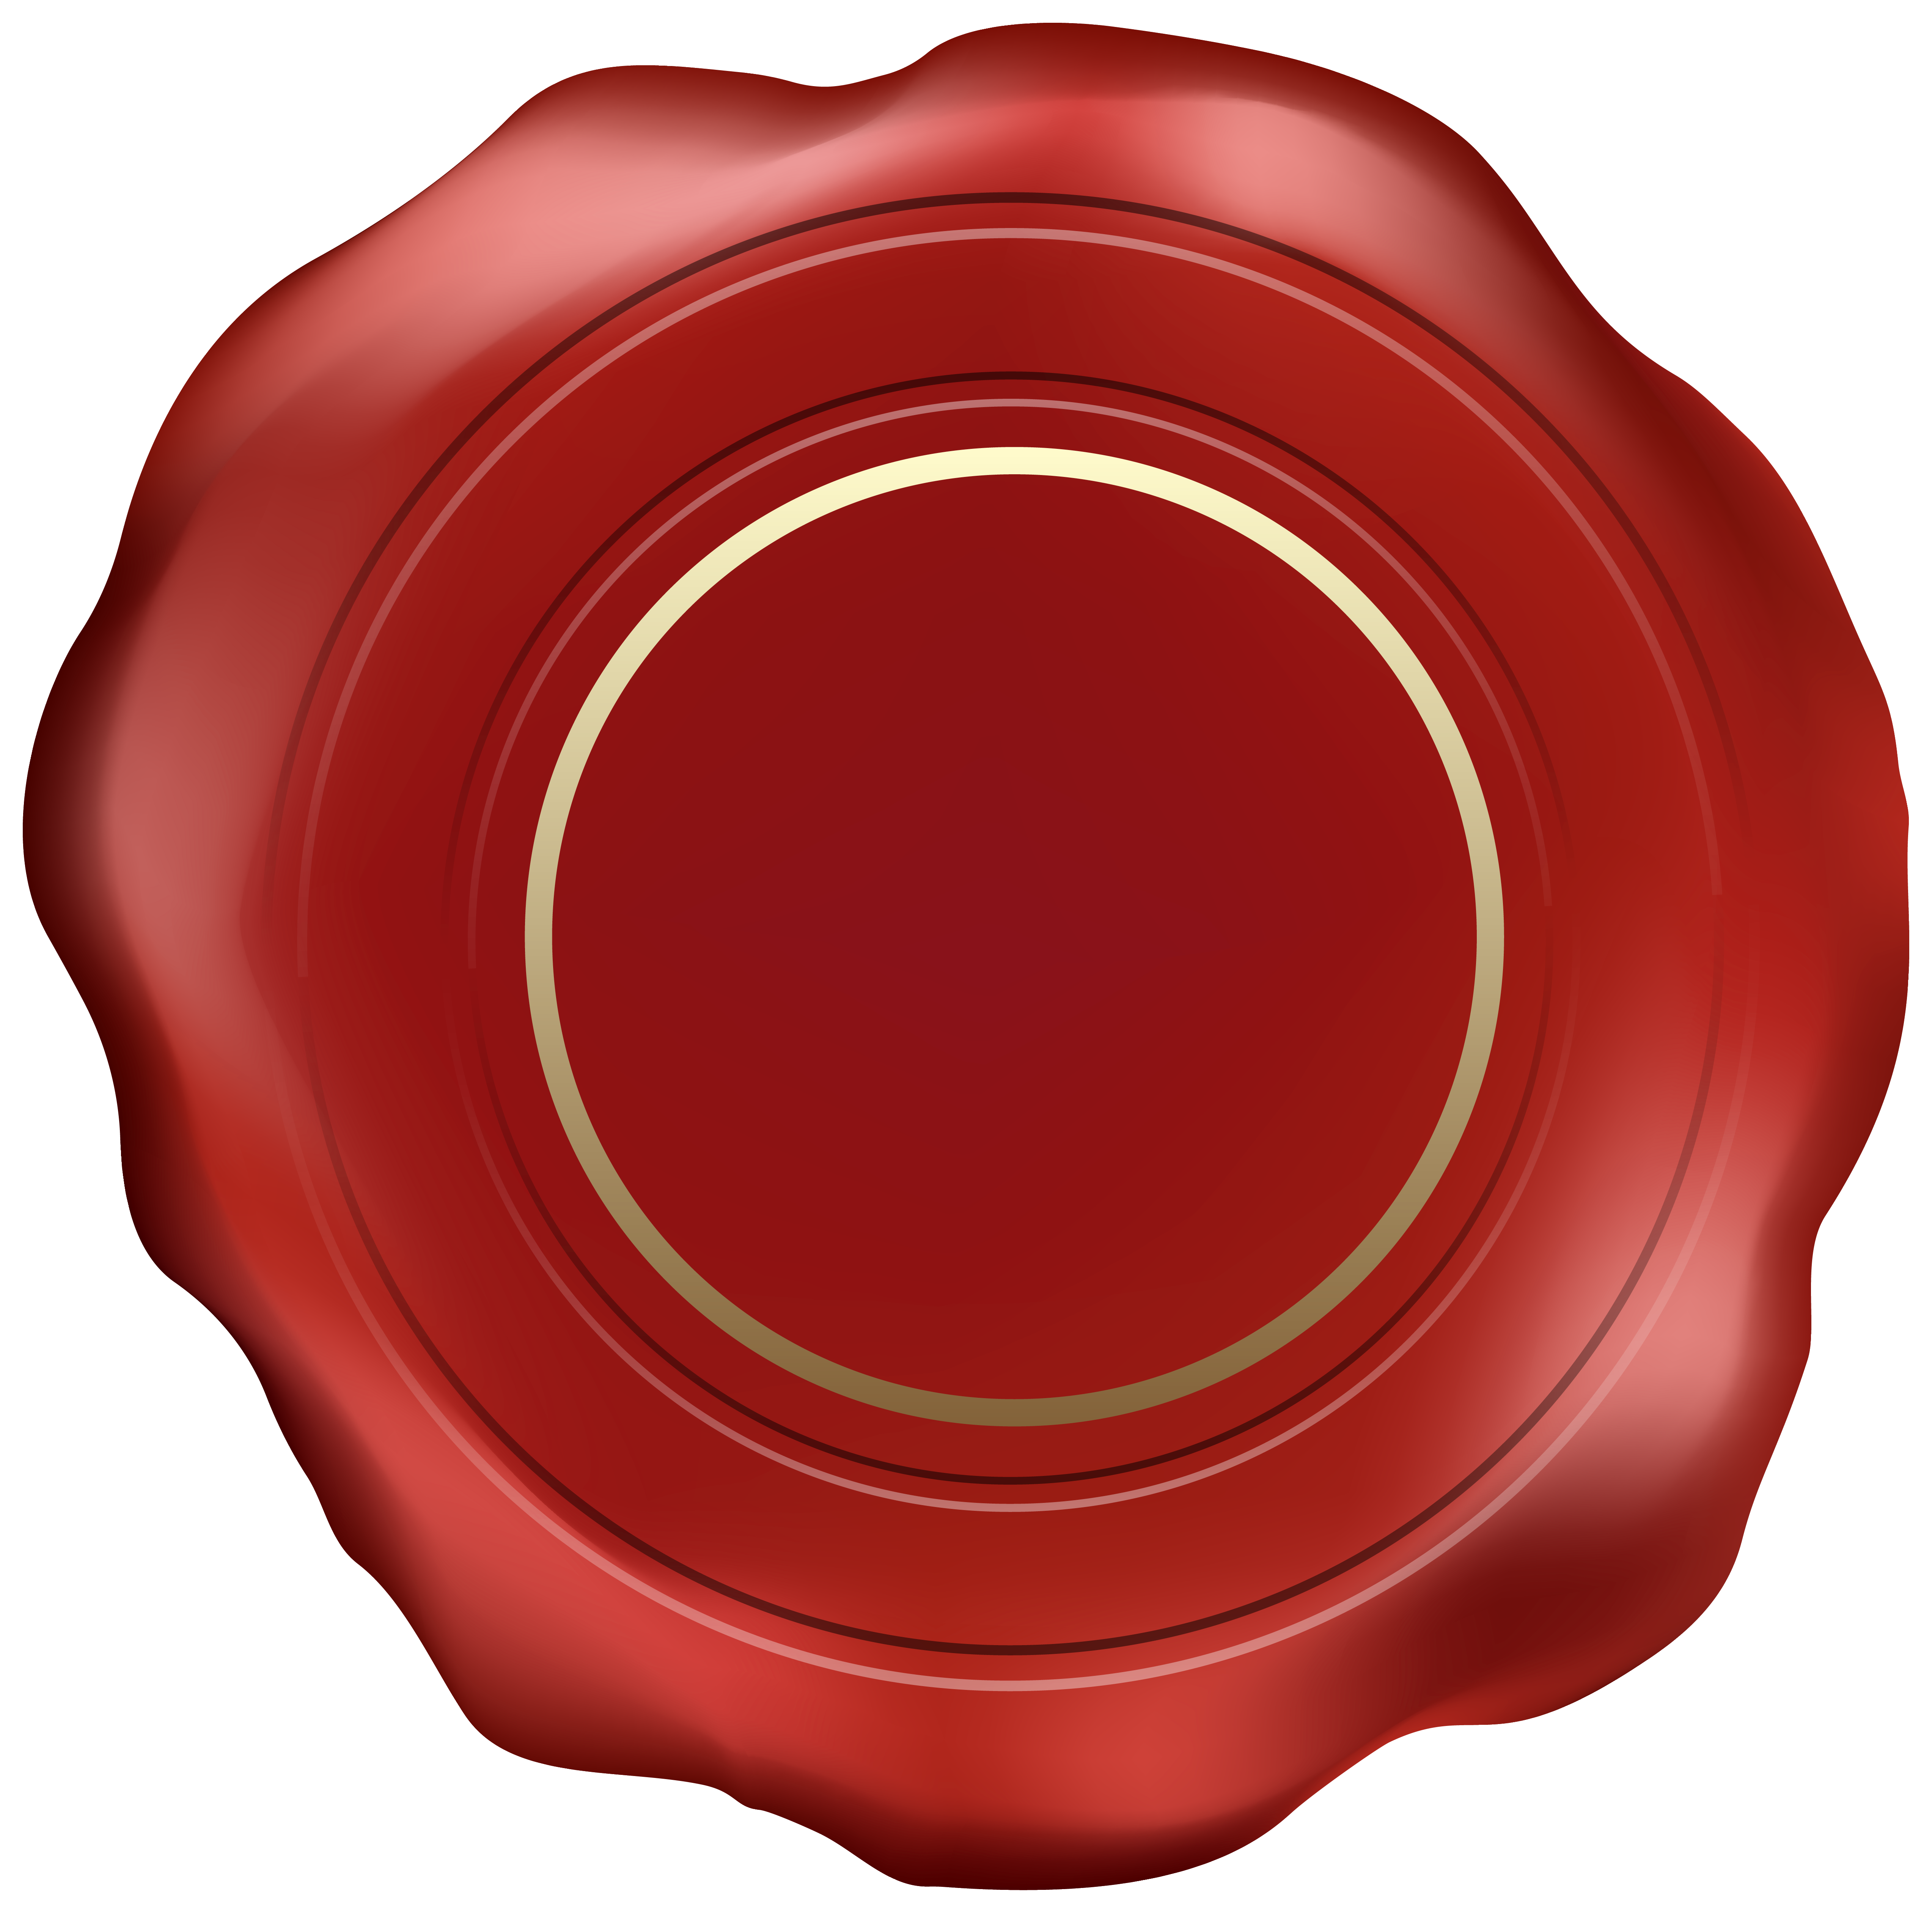 Red Wax Stamp PNG Clipart Image.